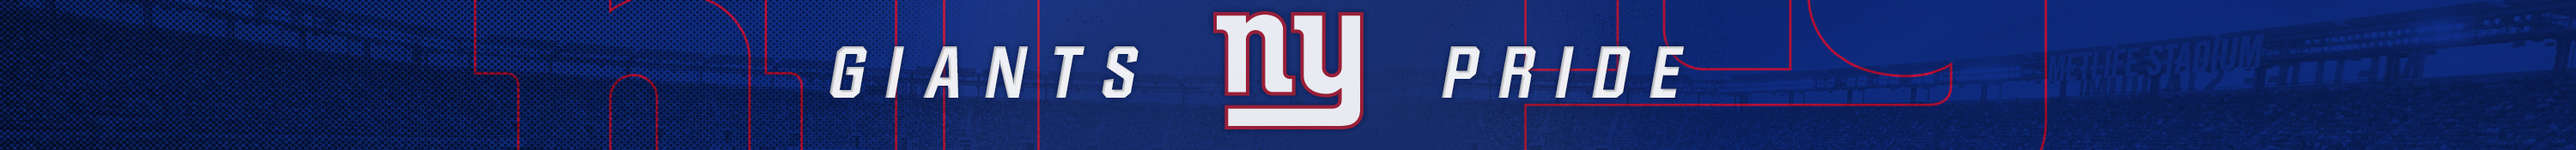 photograph about Printable Nfl Depth Charts identify Giants Staff members Fresh new York Giants